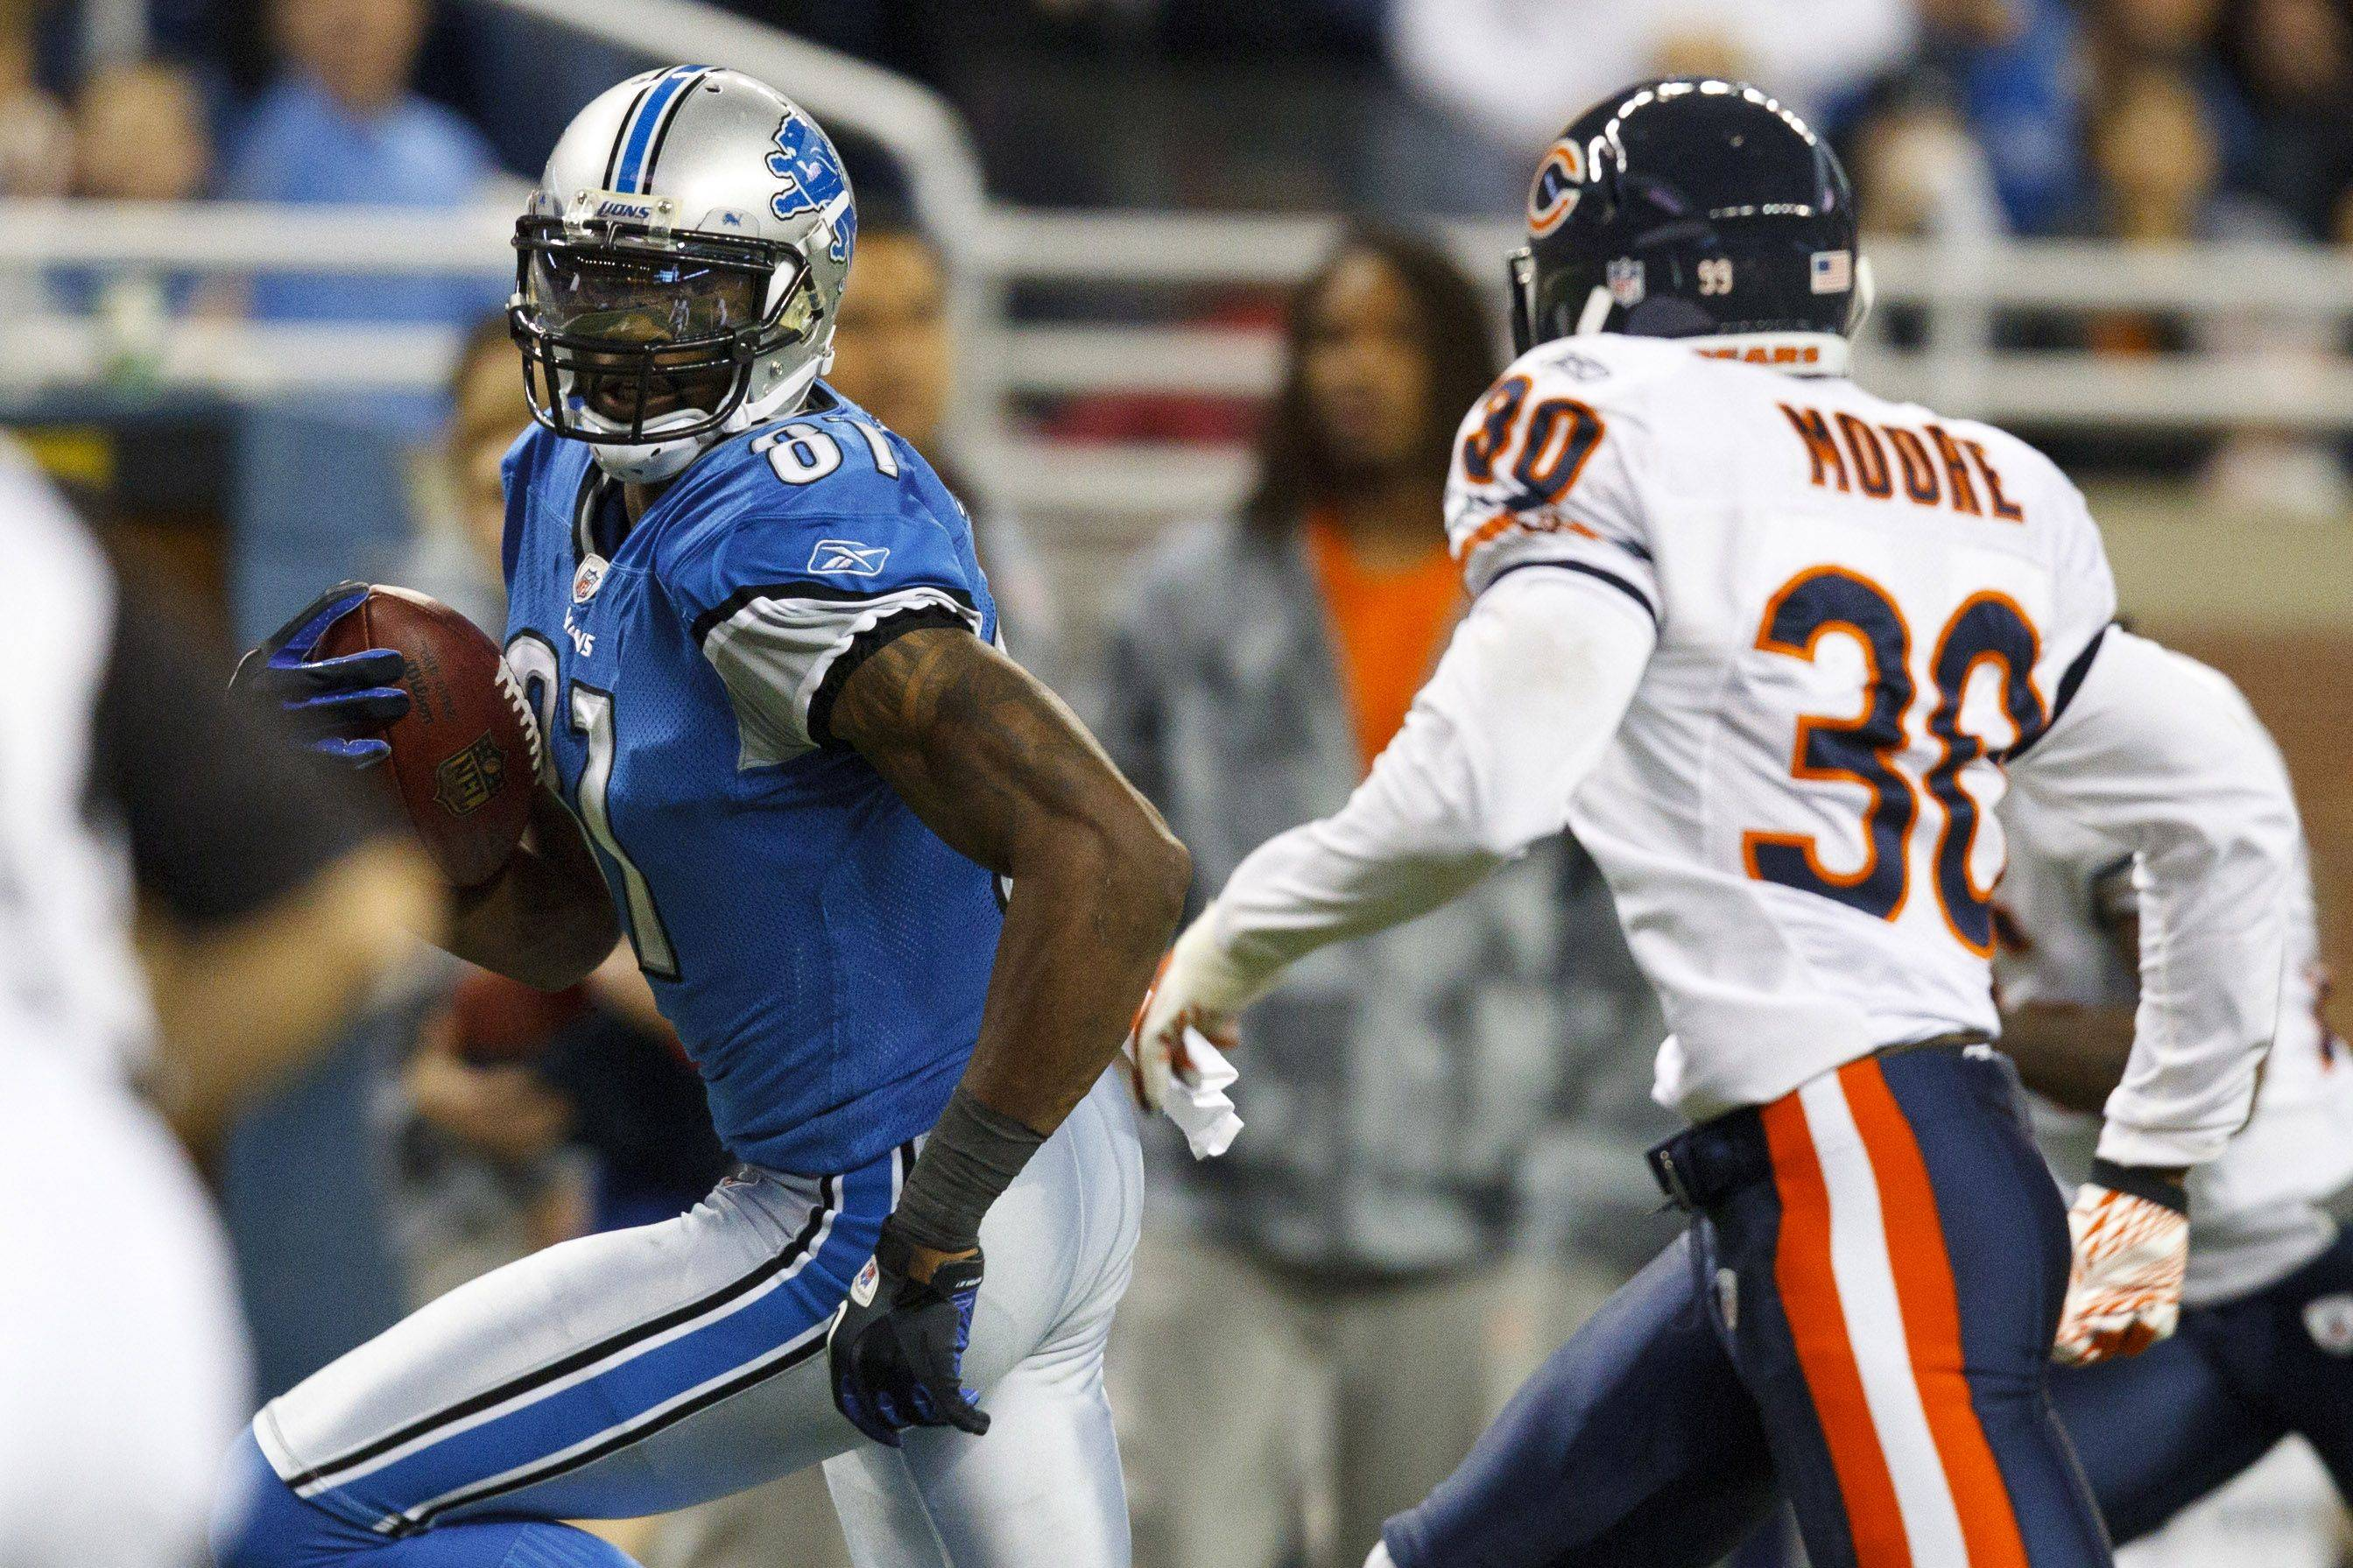 Detroit Lions wide receiver Calvin Johnson runs by Chicago Bears cornerback D.J. Moore to score a touchdown in the first half.